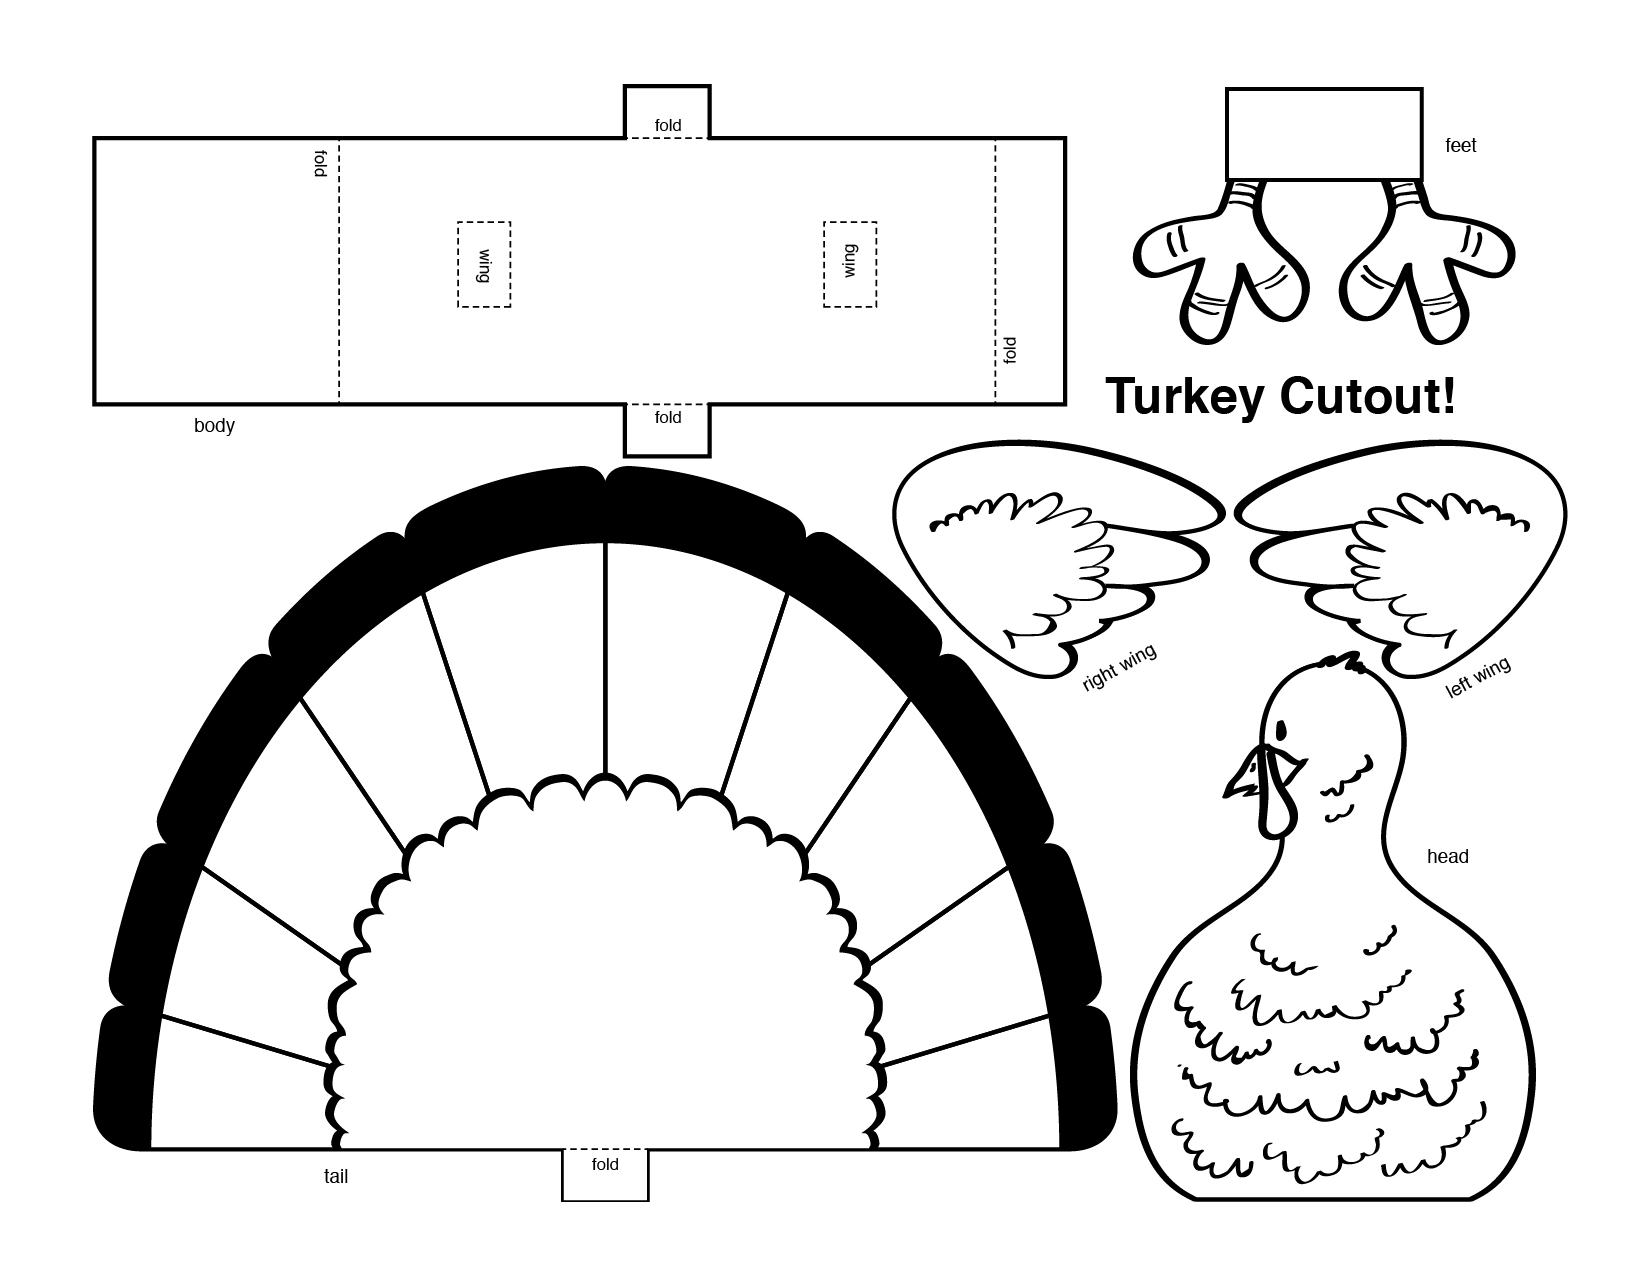 thanksgiving 3d turkey cutout downloadable art project for kids